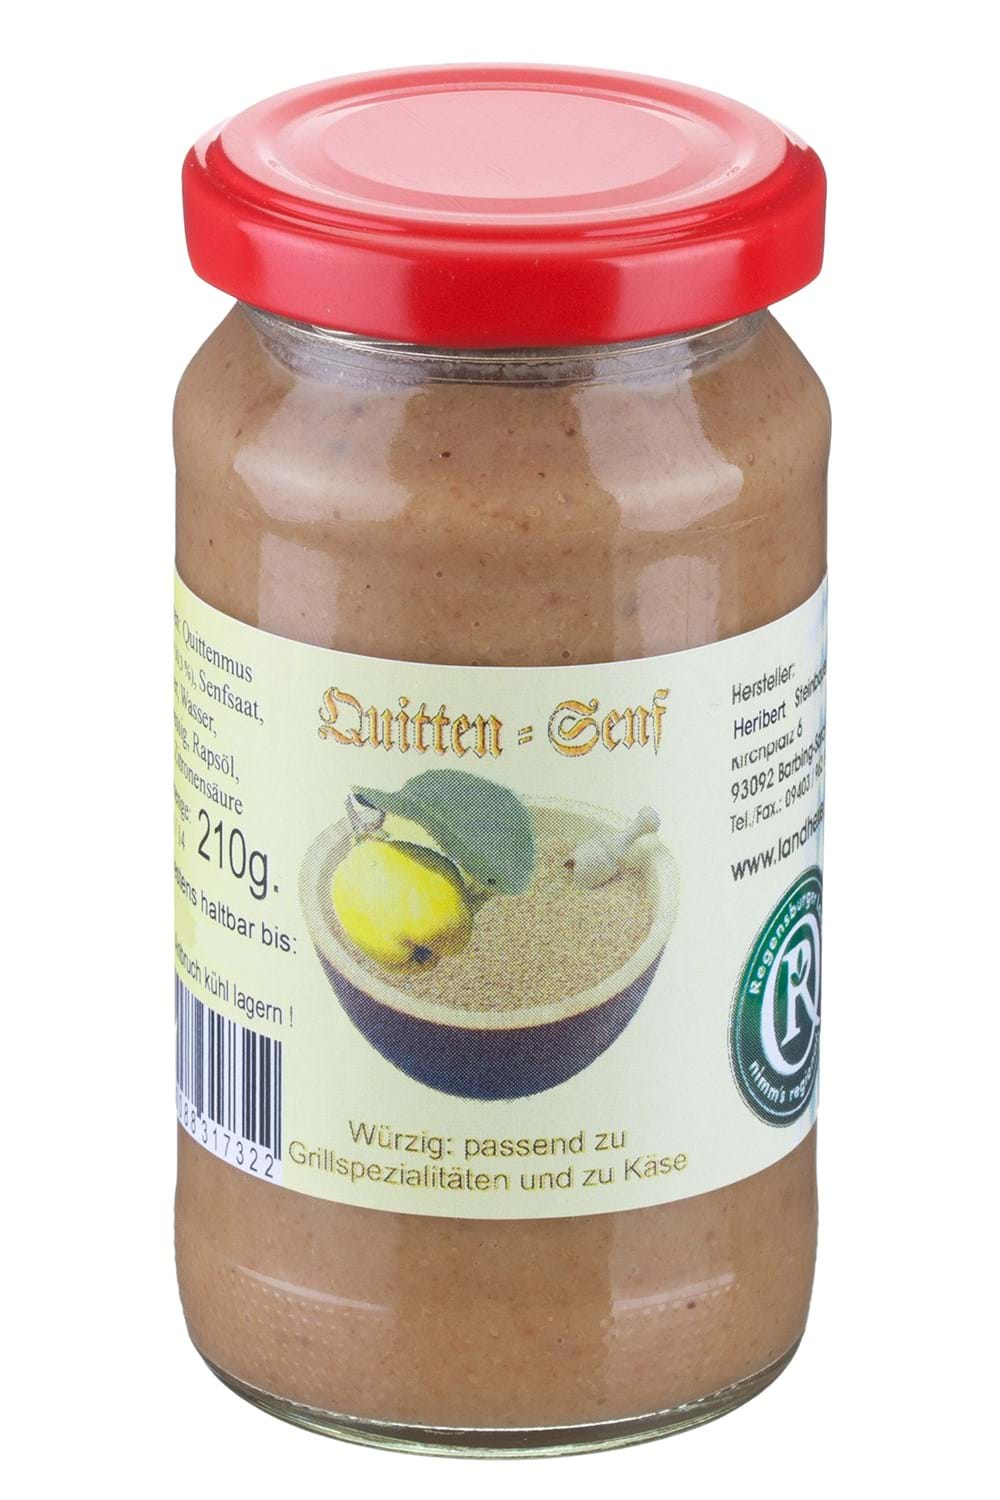 Art.-Nr. 732  Quitten-Senf 200 ml Glas 1,89 Euro